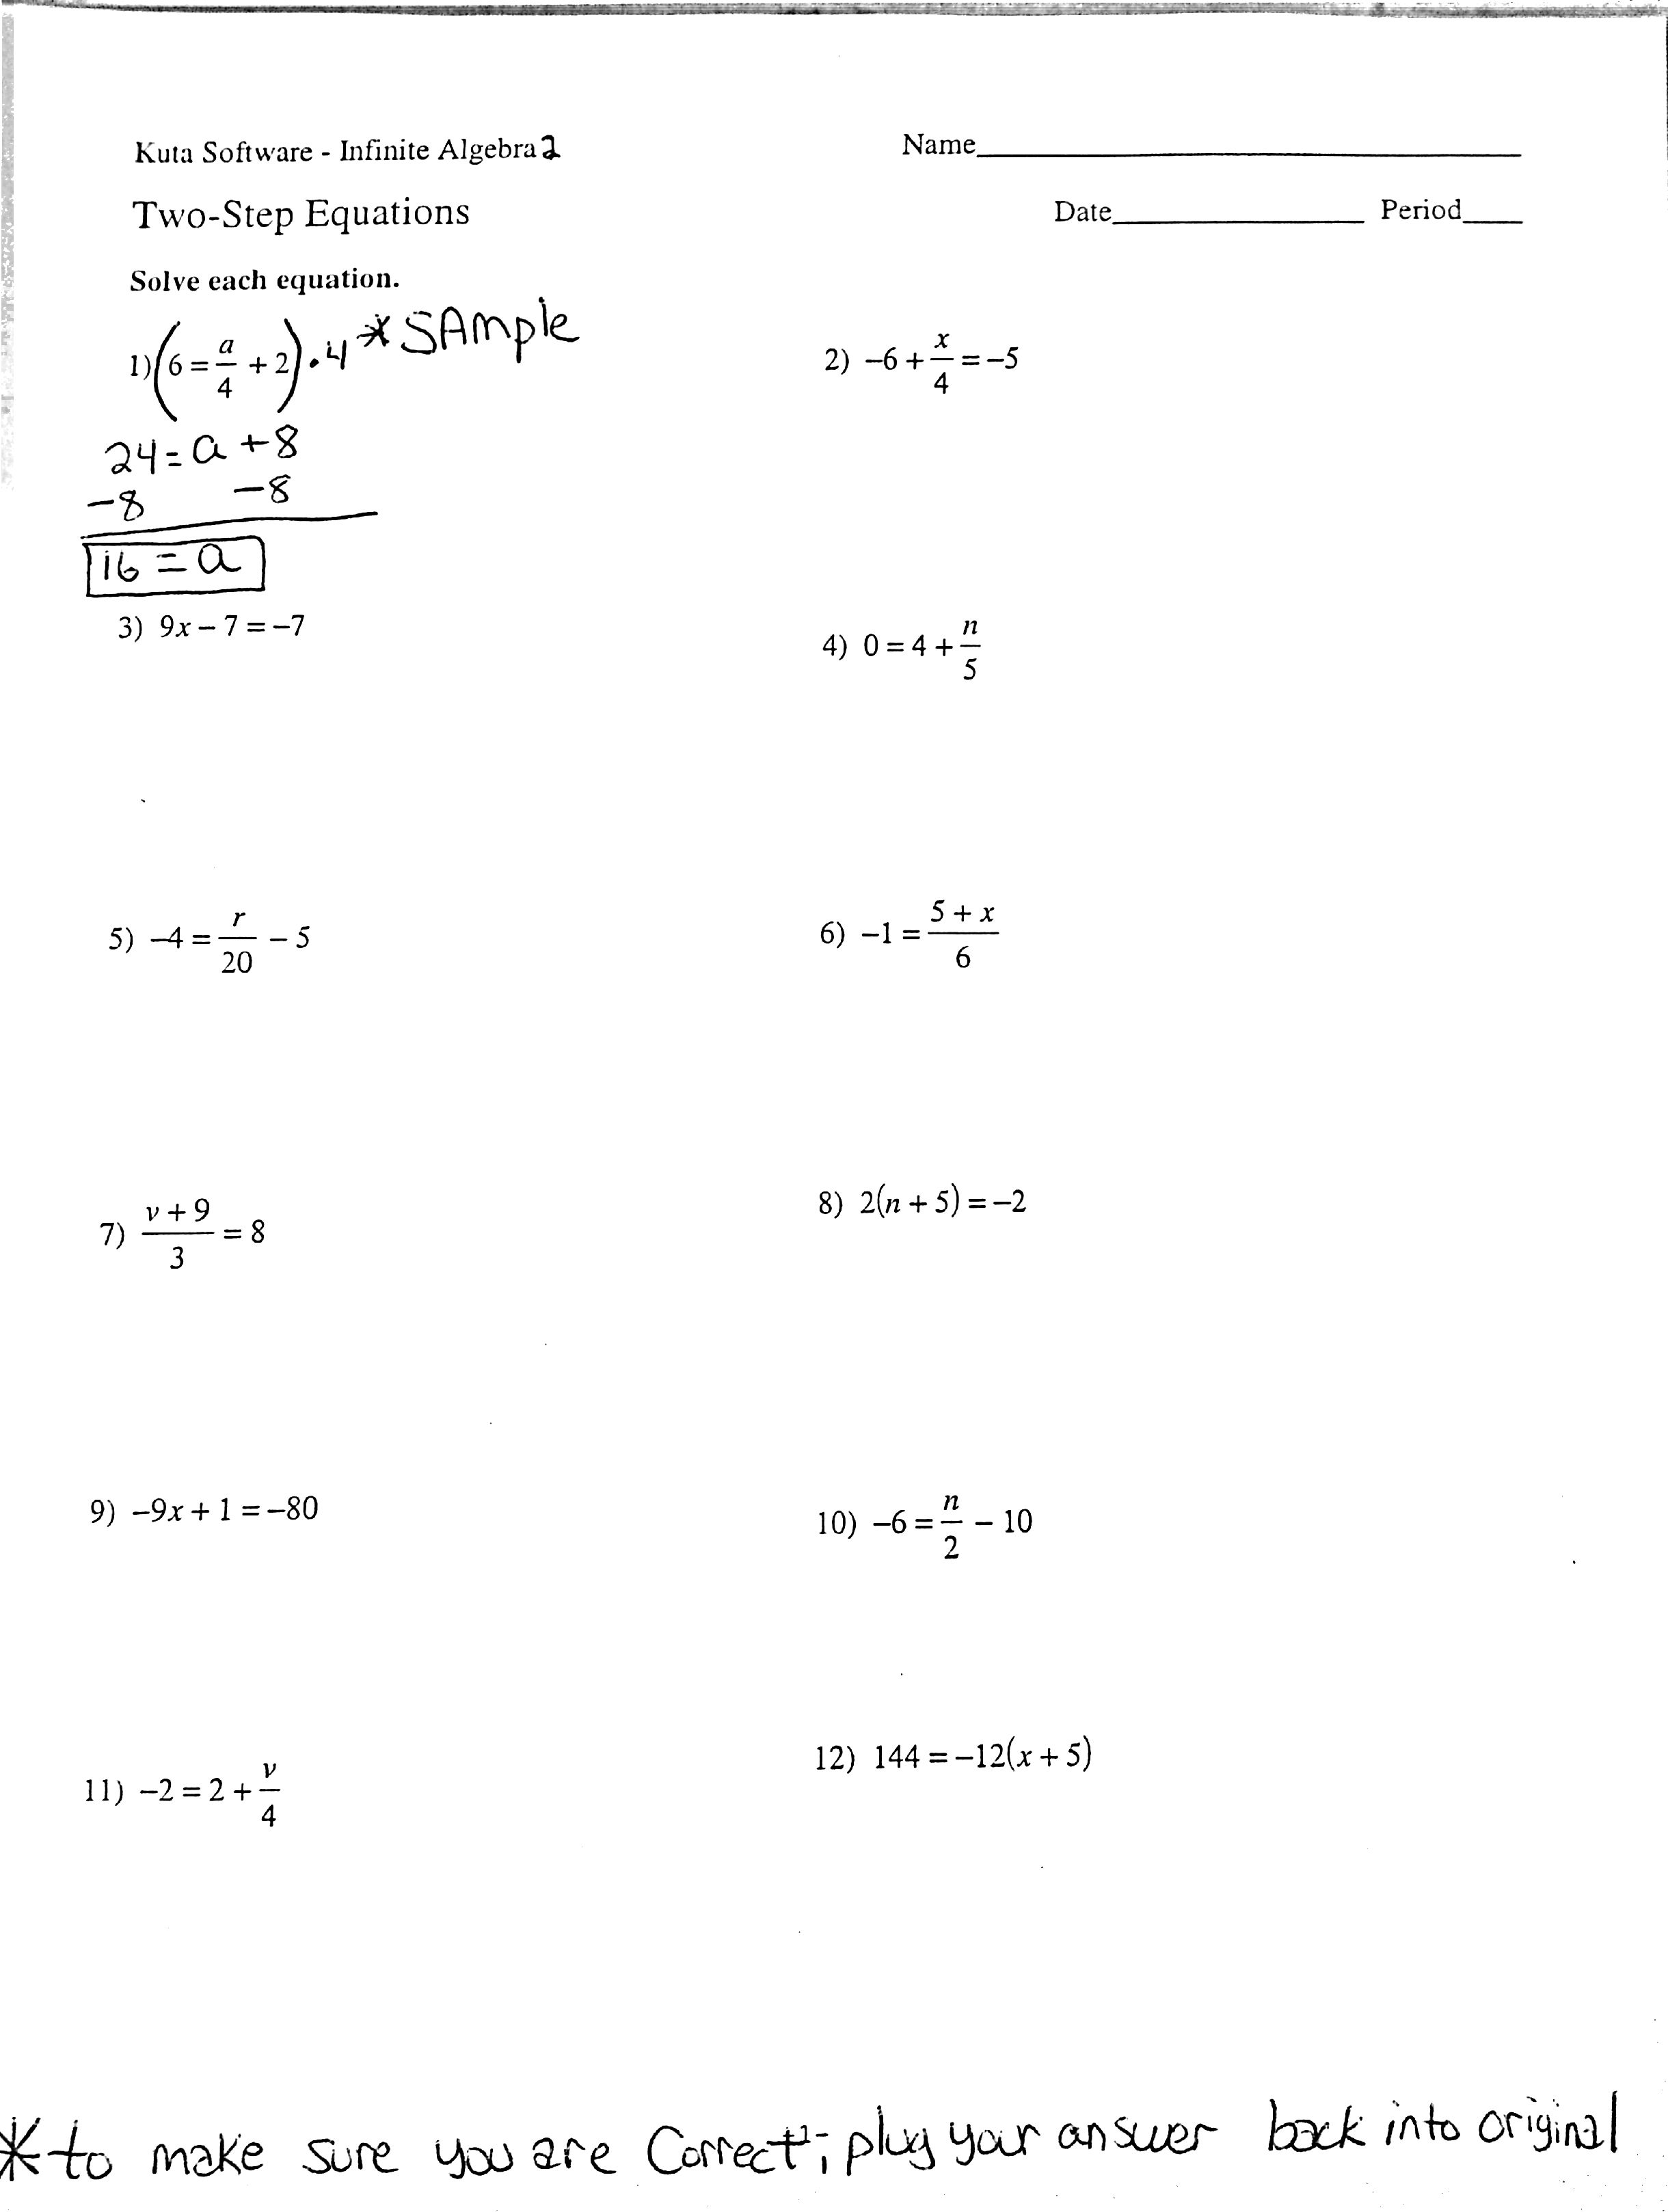 Worksheets Solving Equations Printable Worksheets printables 2 step algebra equations worksheets tempojs thousands one worksheet answers abtd answers